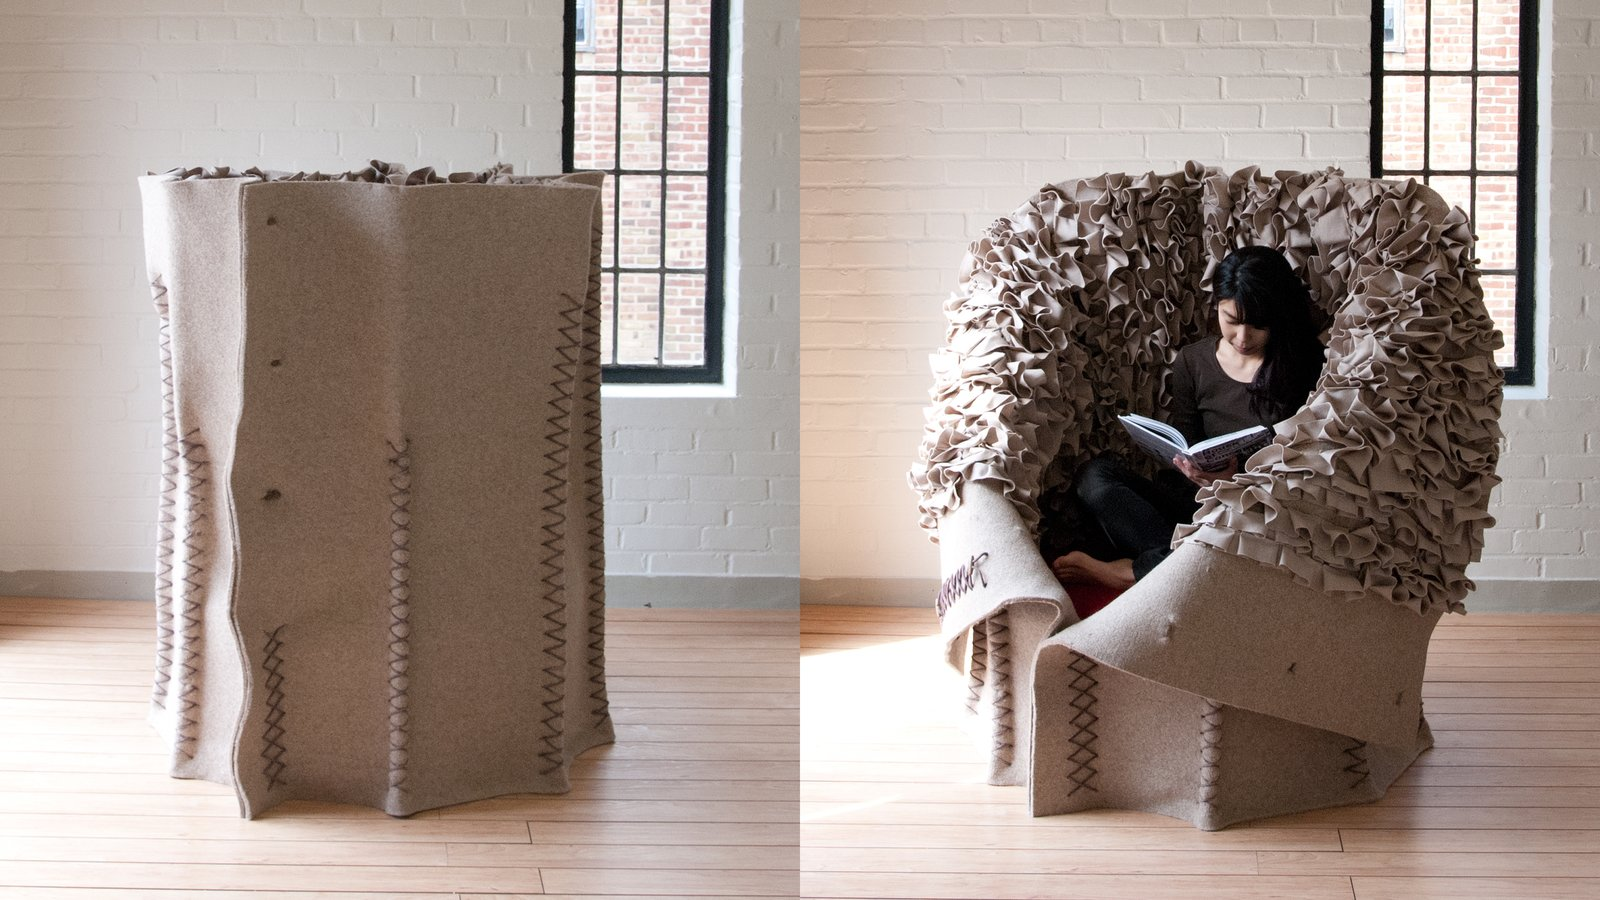 Living Room Button Up Chair.  Photo 5 of 5 in Dwell 24: Ayako Aratani and Evan Fay